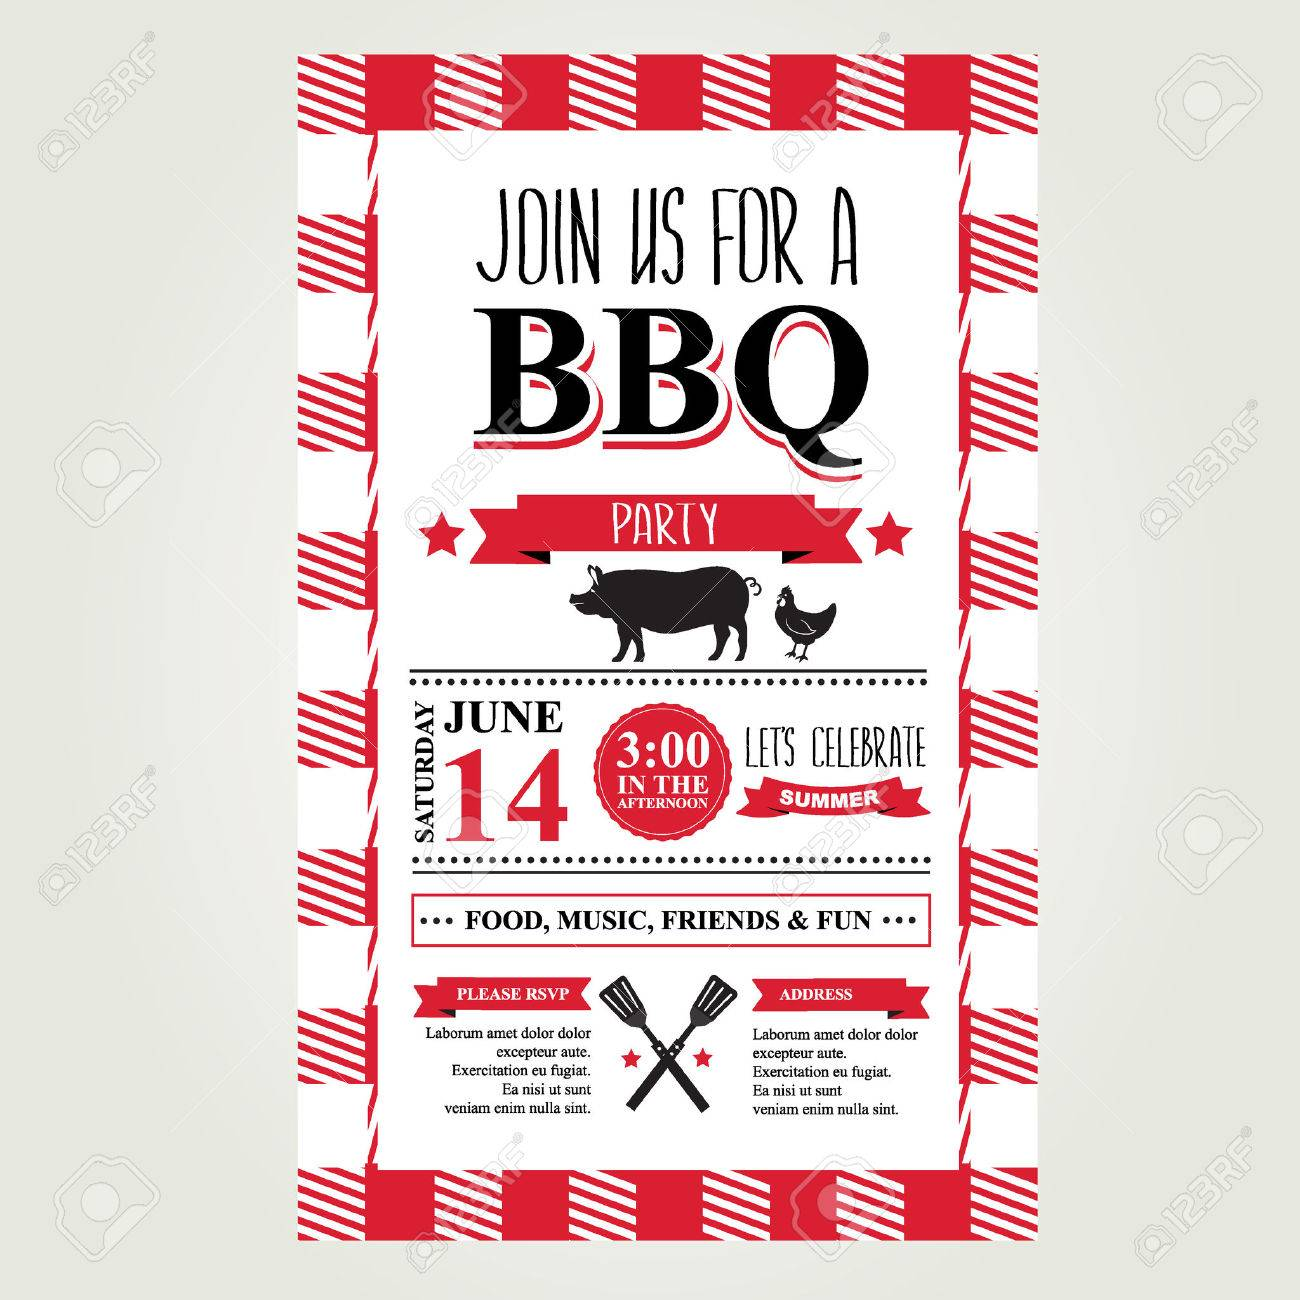 Barbecue Party Invitation. Bbq Brochure Menu Design. Royalty Free ...